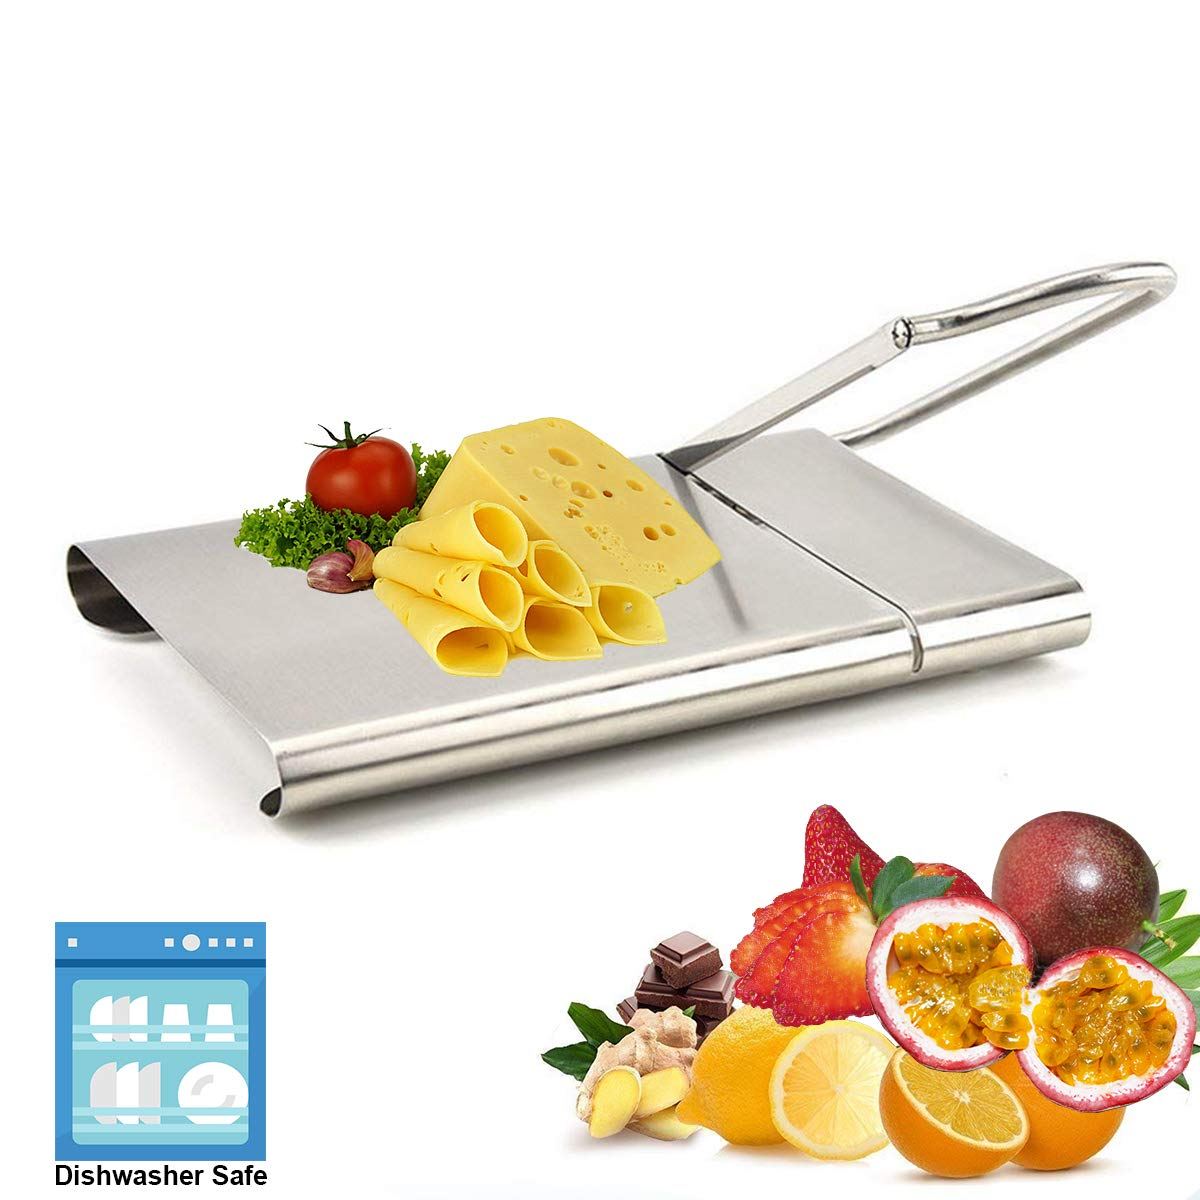 Cheese Slicer Stainless Steel Cheese Cutter, Butter Knife kit Food Slicer with Board - Joy.J